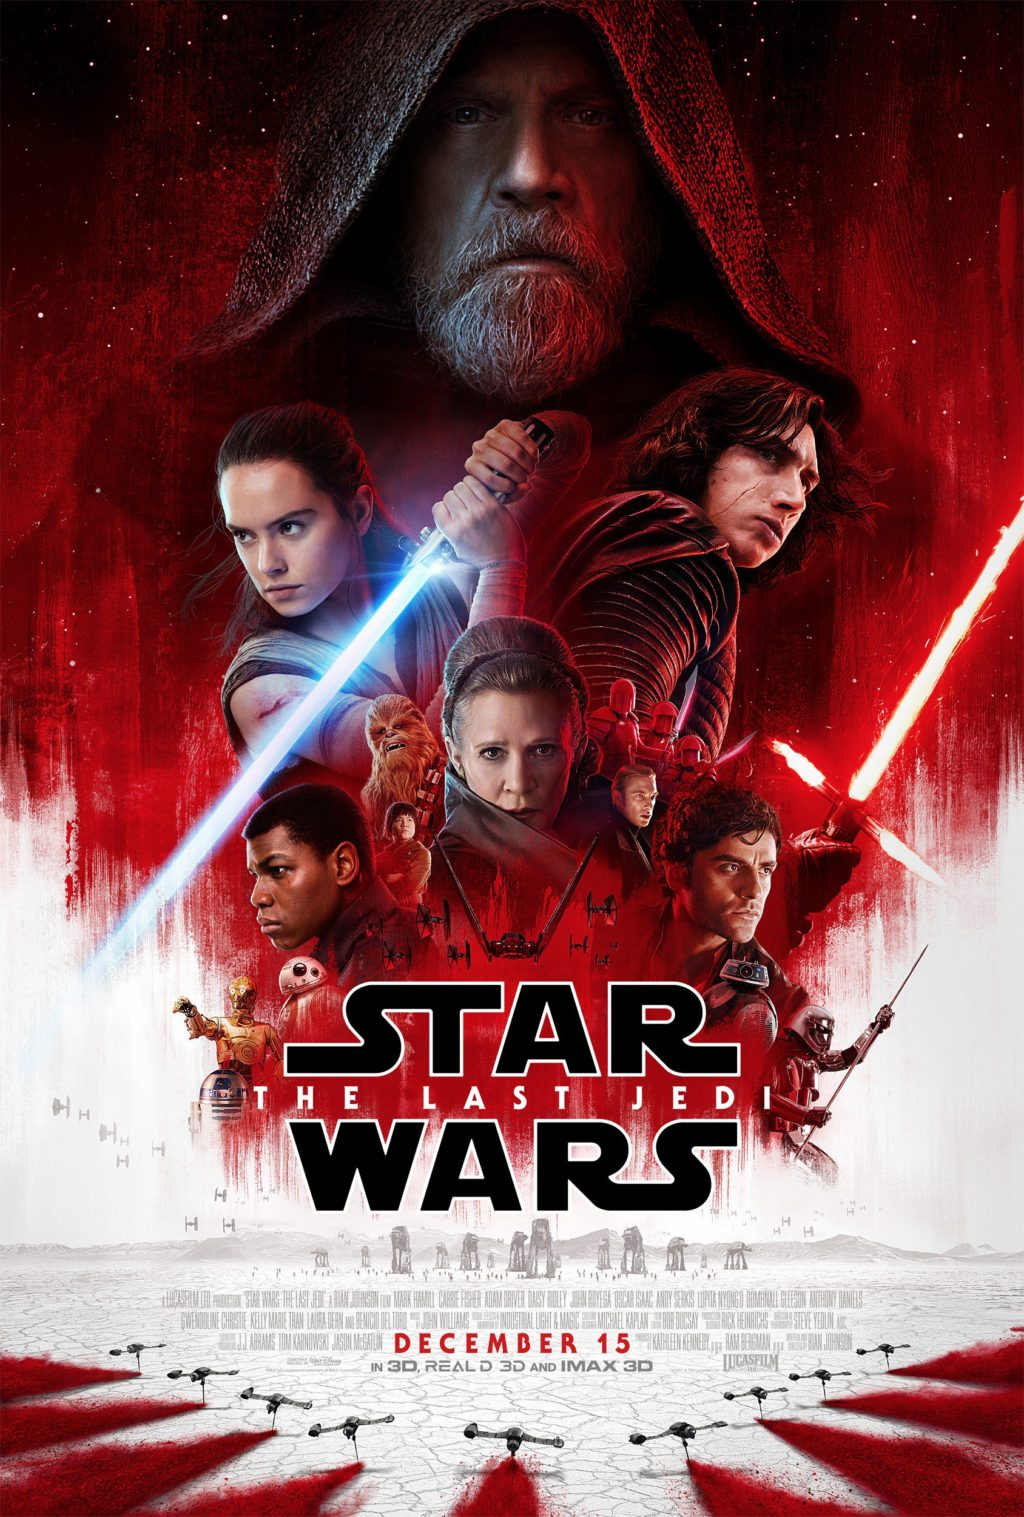 nuevo trailer de Stars Wars The Last Jedi